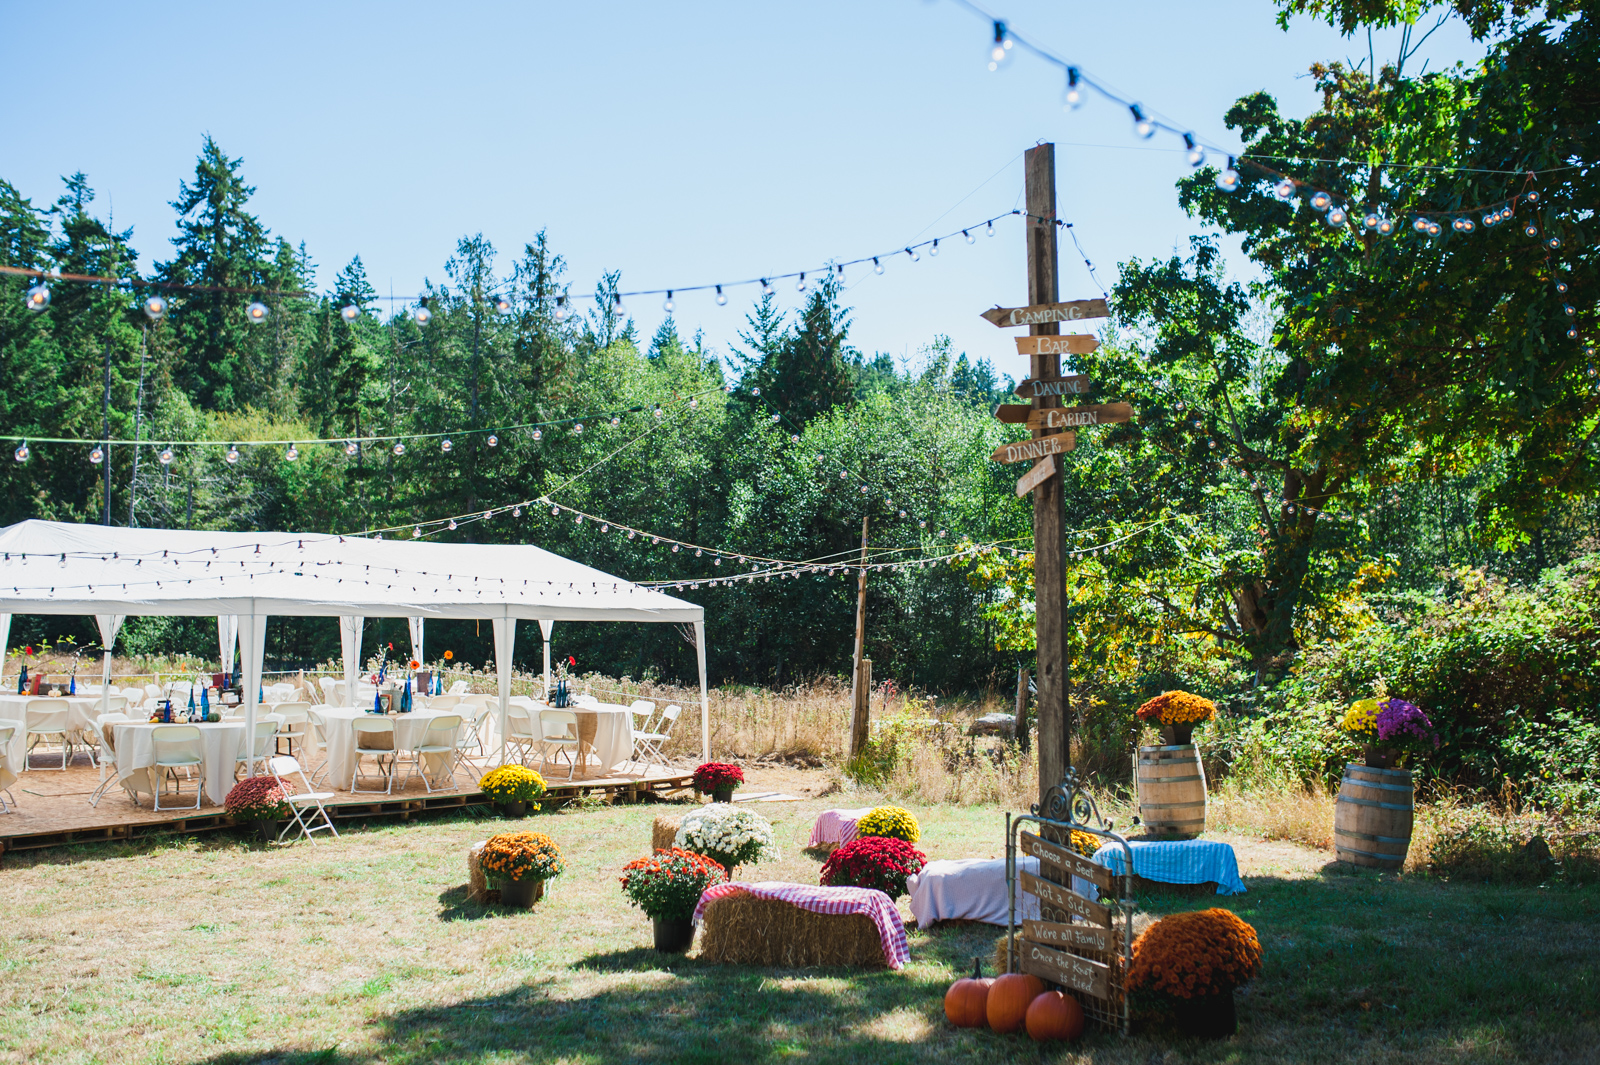 sooke-wedding-photographers-diy-wedding-in-east-sooke-20.jpg